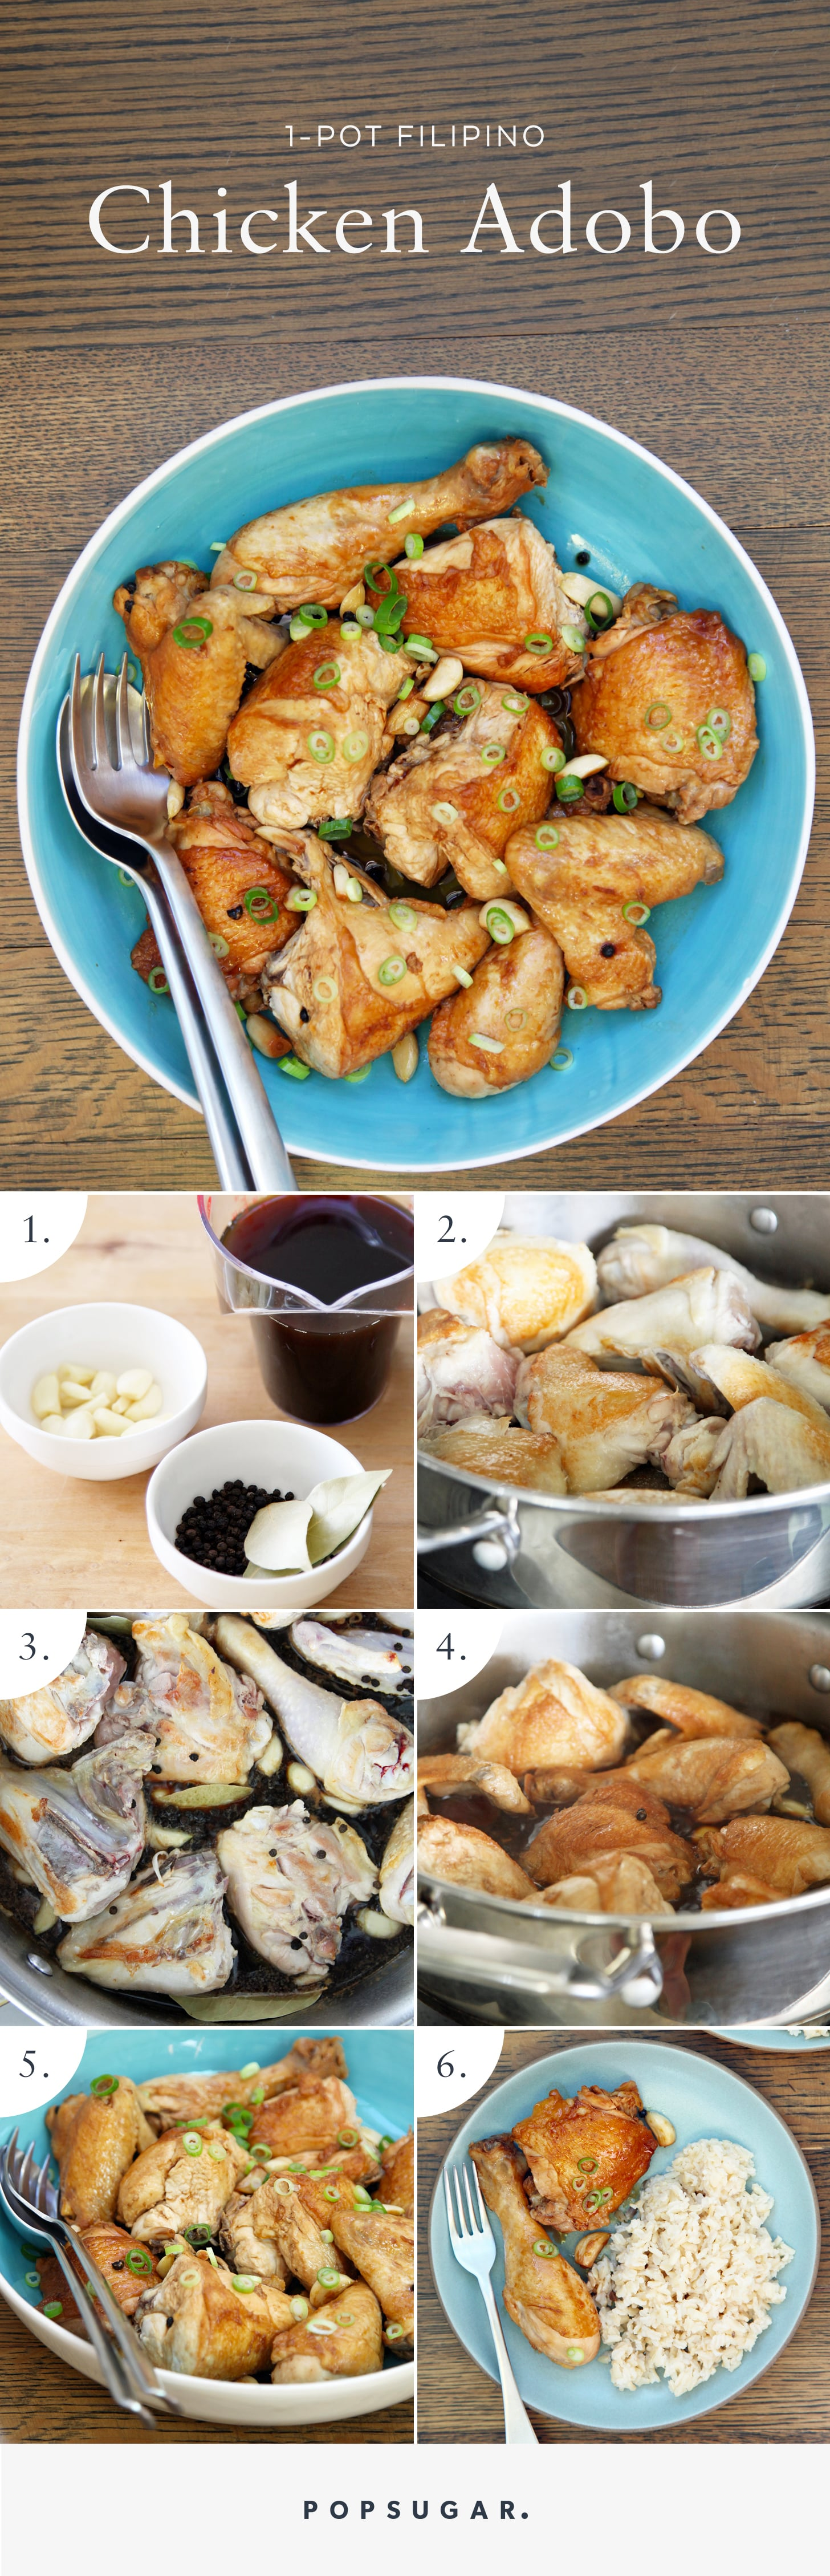 Traditional filipino chicken adobo recipe popsugar food directions forumfinder Images